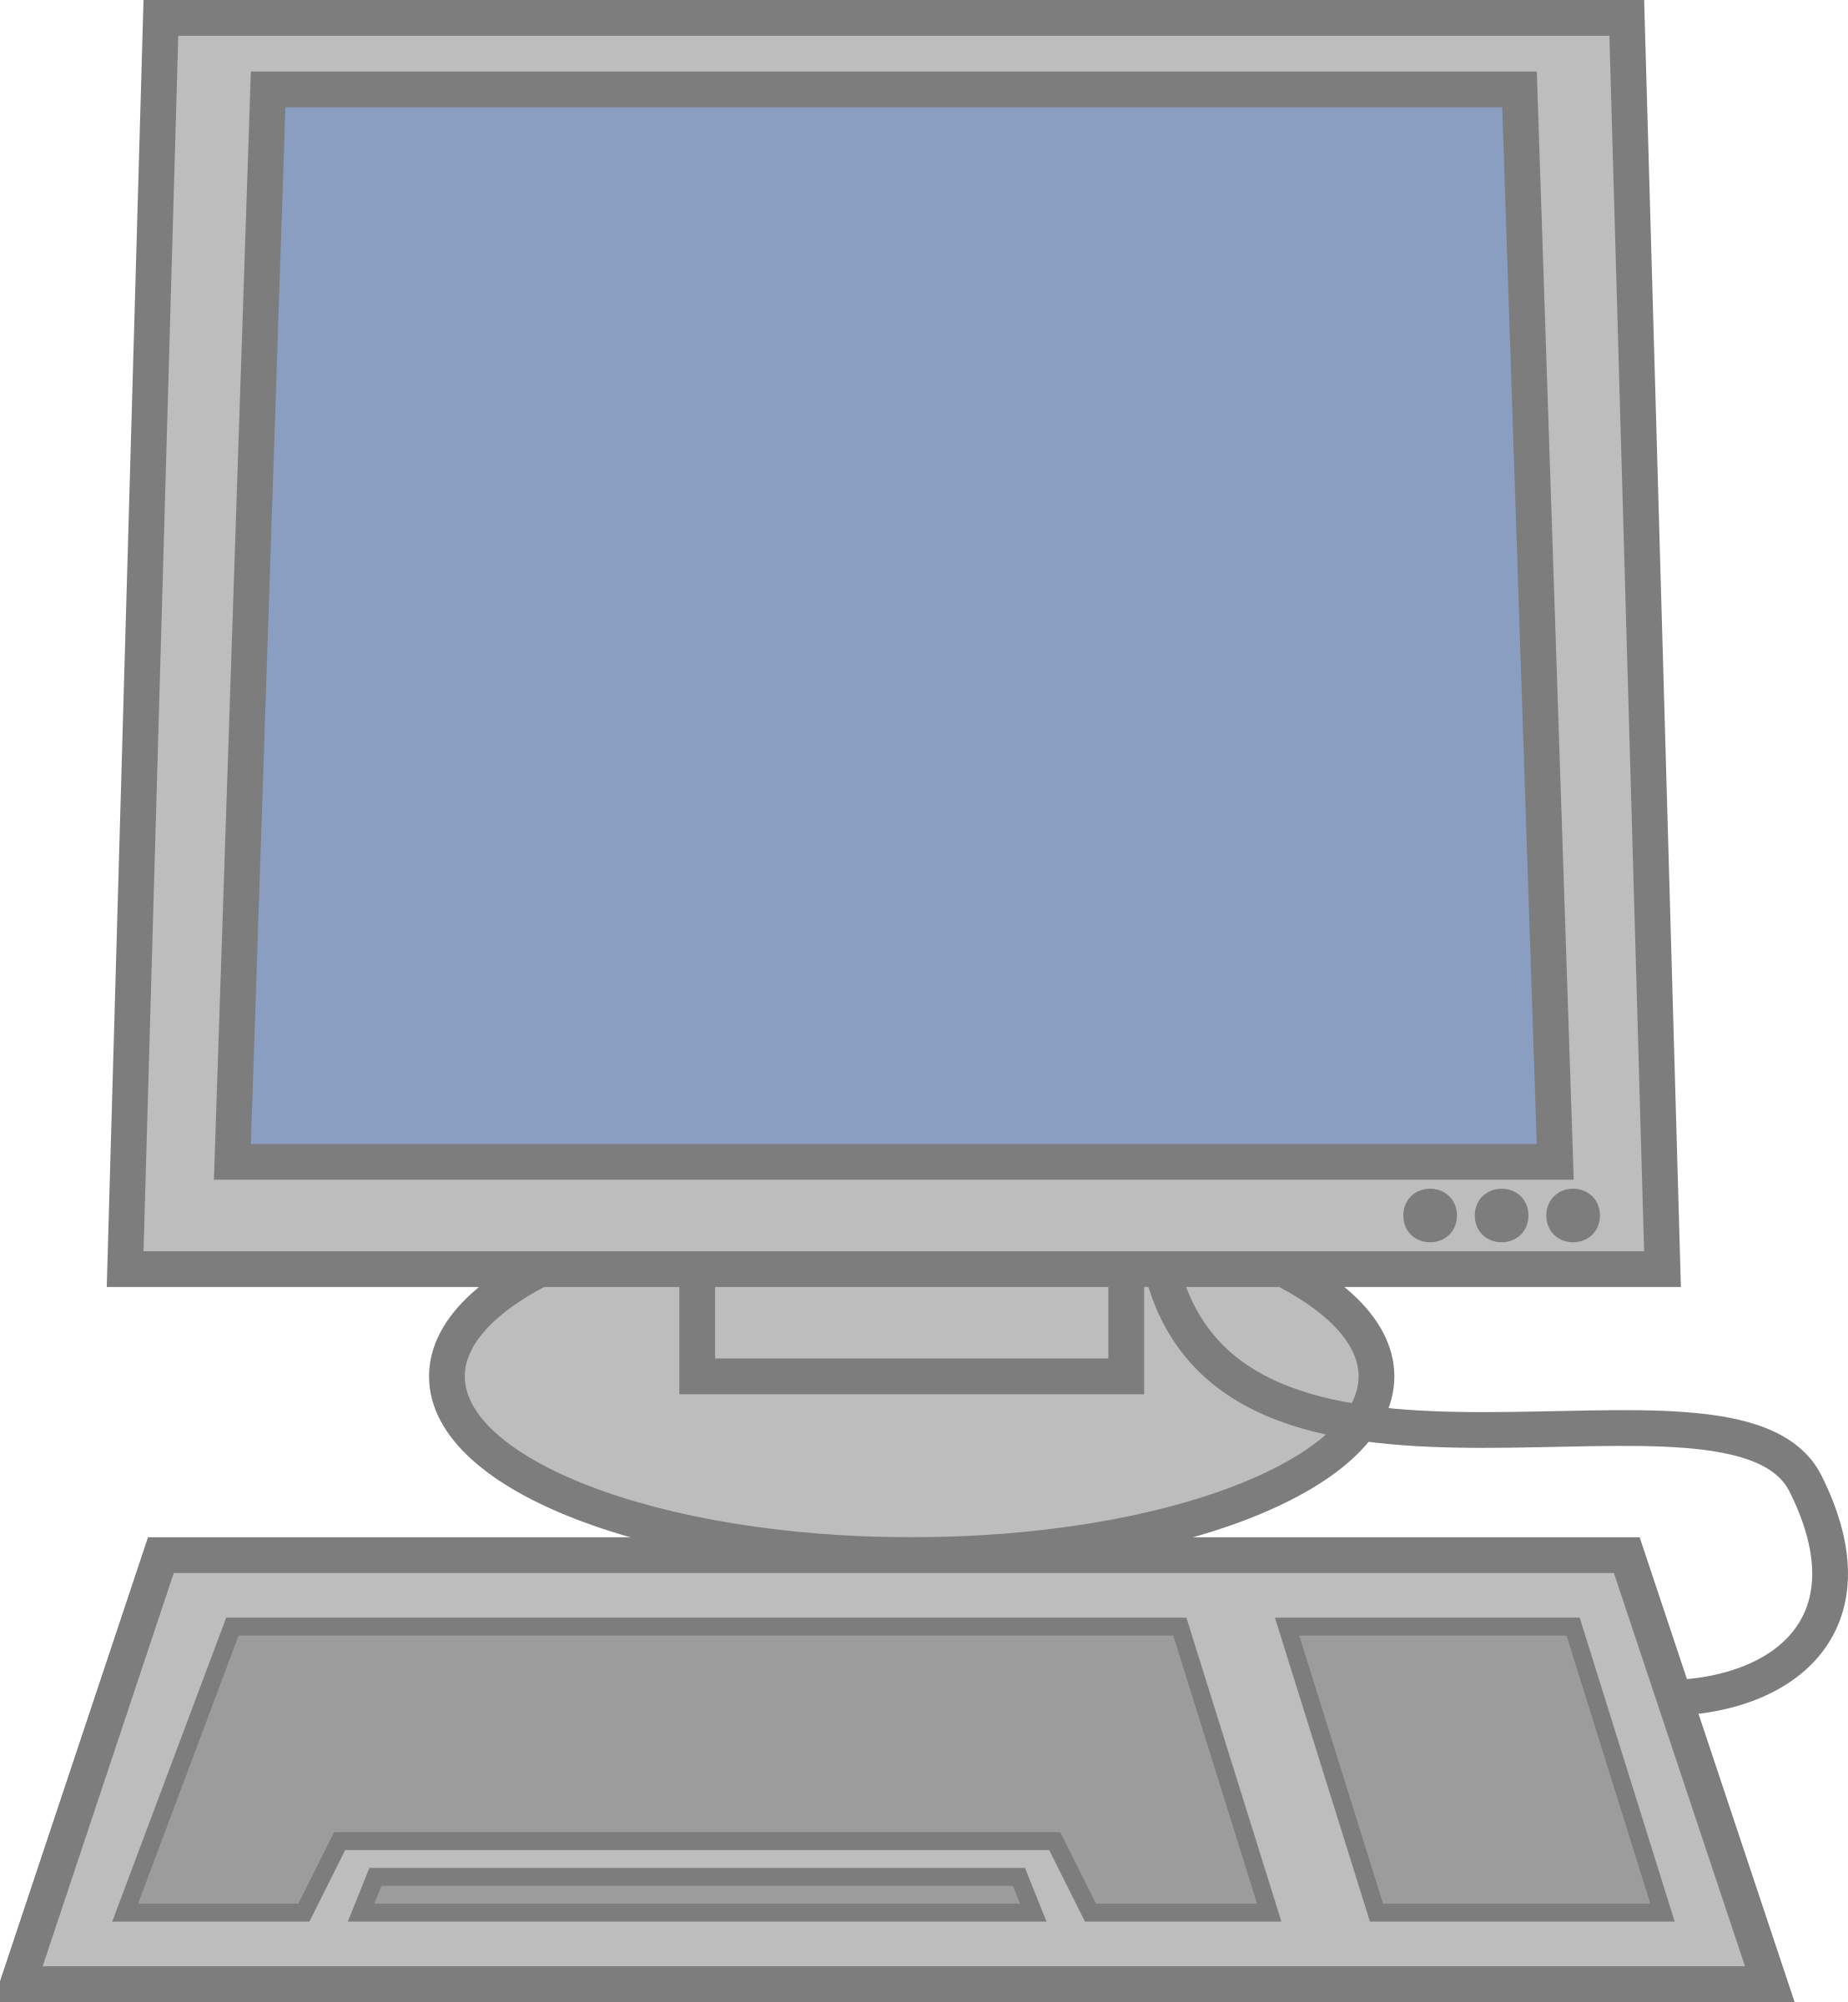 Office clipart monitor. Computer panda free images